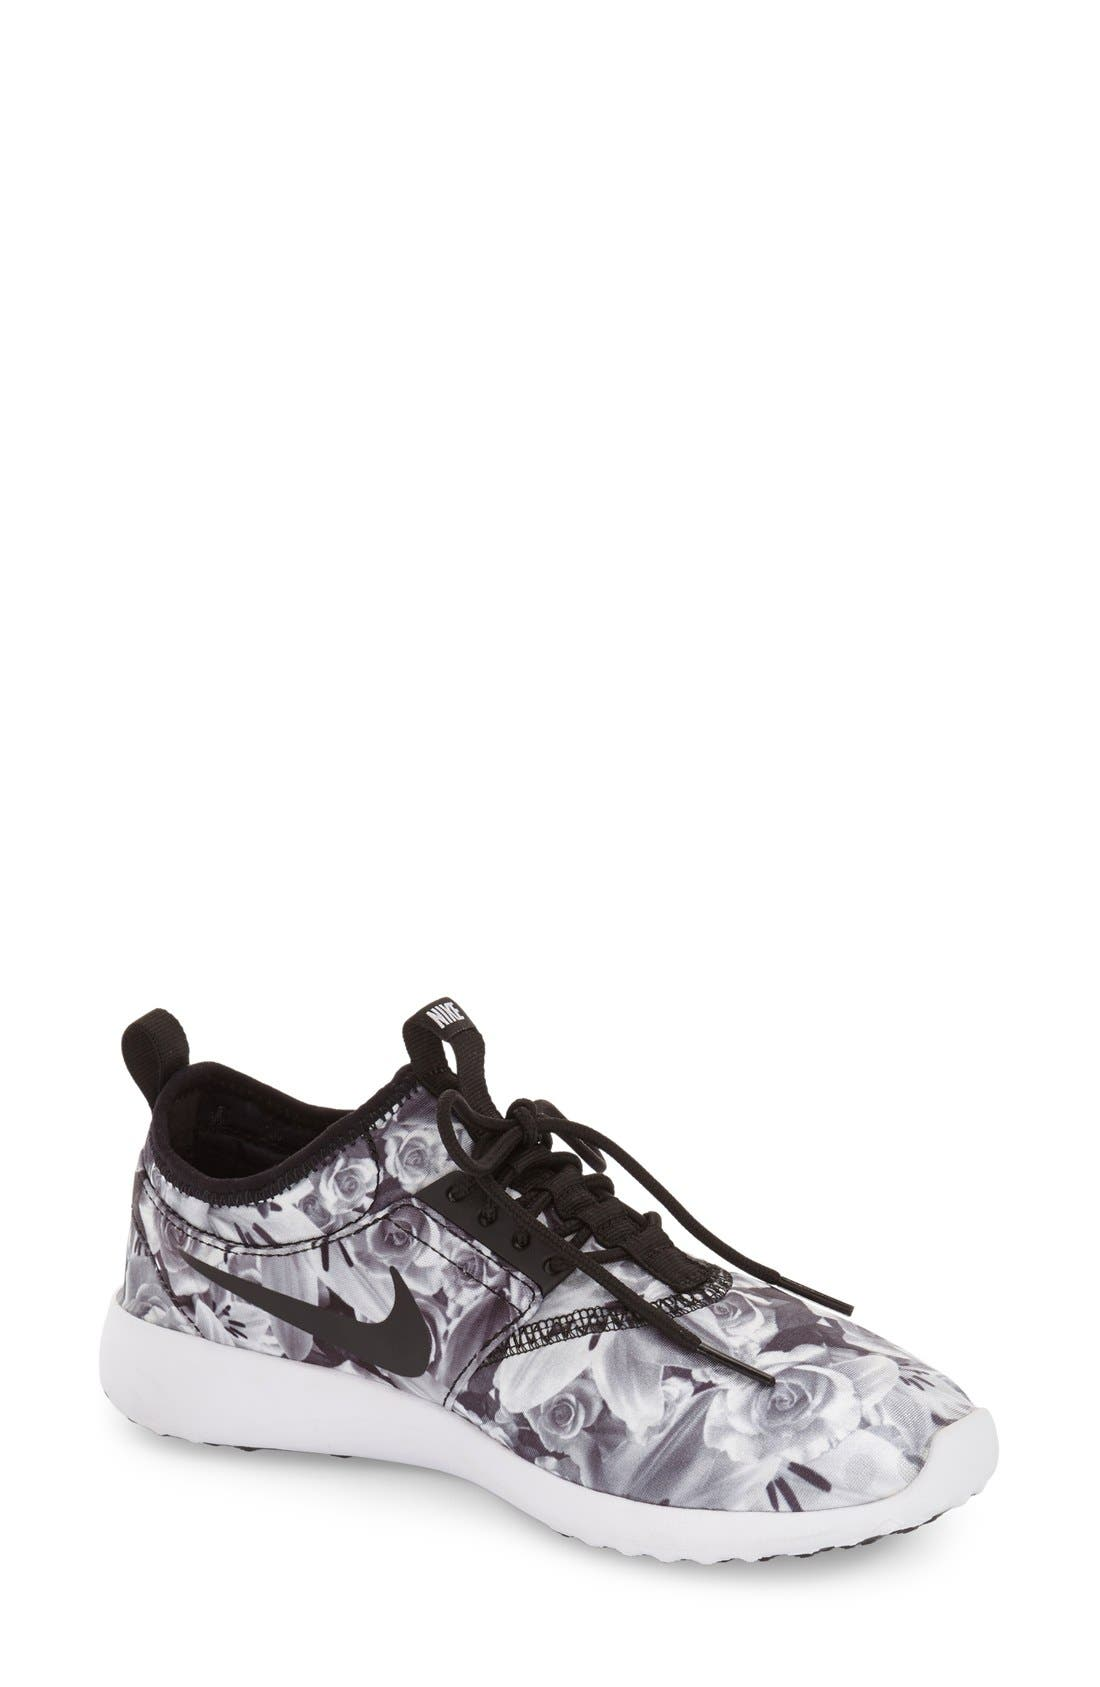 Alternate Image 1 Selected - Nike Juvenate Sneaker (Women)